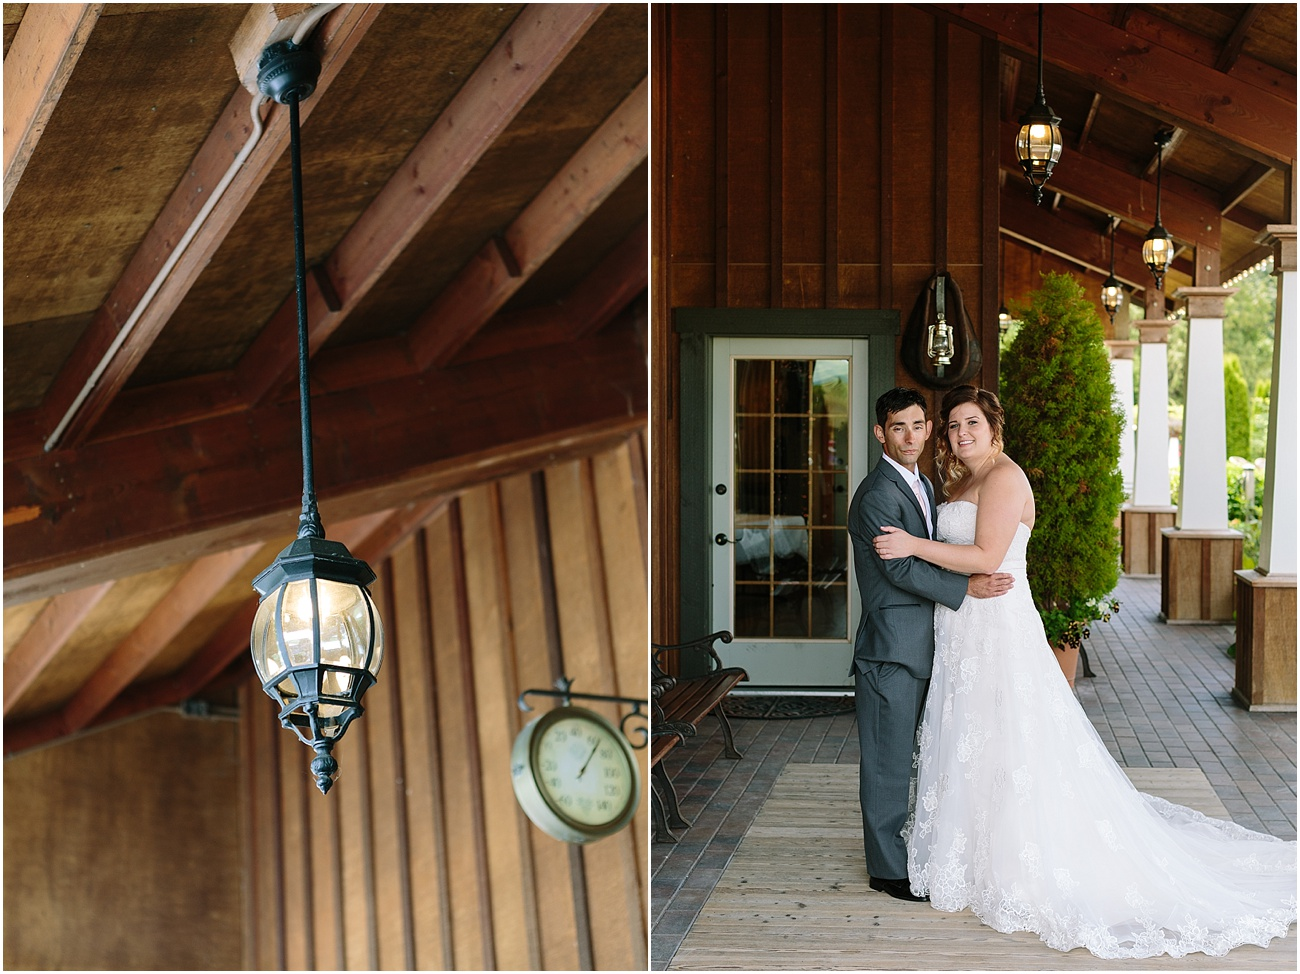 Tauzin_Wedding_Tazer_Valley_Farm_Stanwood_Washington__0024